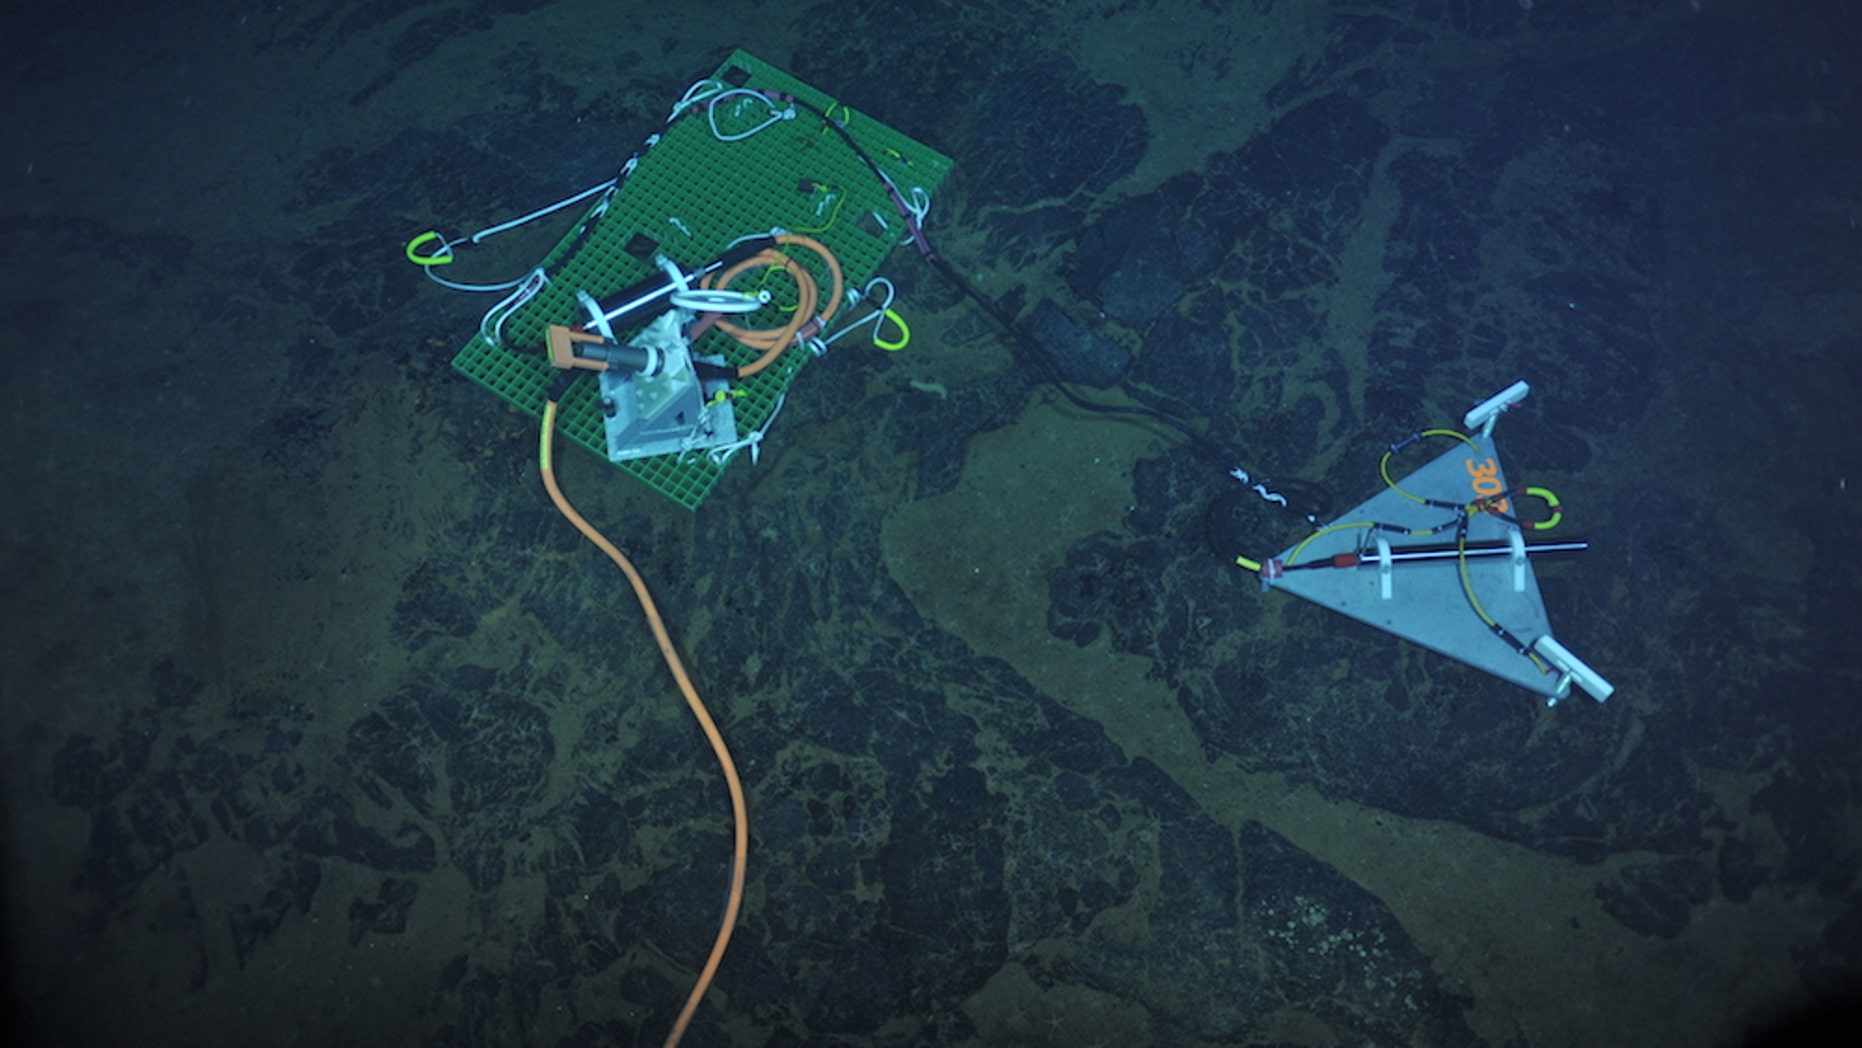 A seismometer (long black cylinder, right) installed in 2013 atop the Axial Seamount. The green plate transmits real-time data to the orange cable and then back to shore as part of the National Science Foundation's Ocean Observatories Initiative.